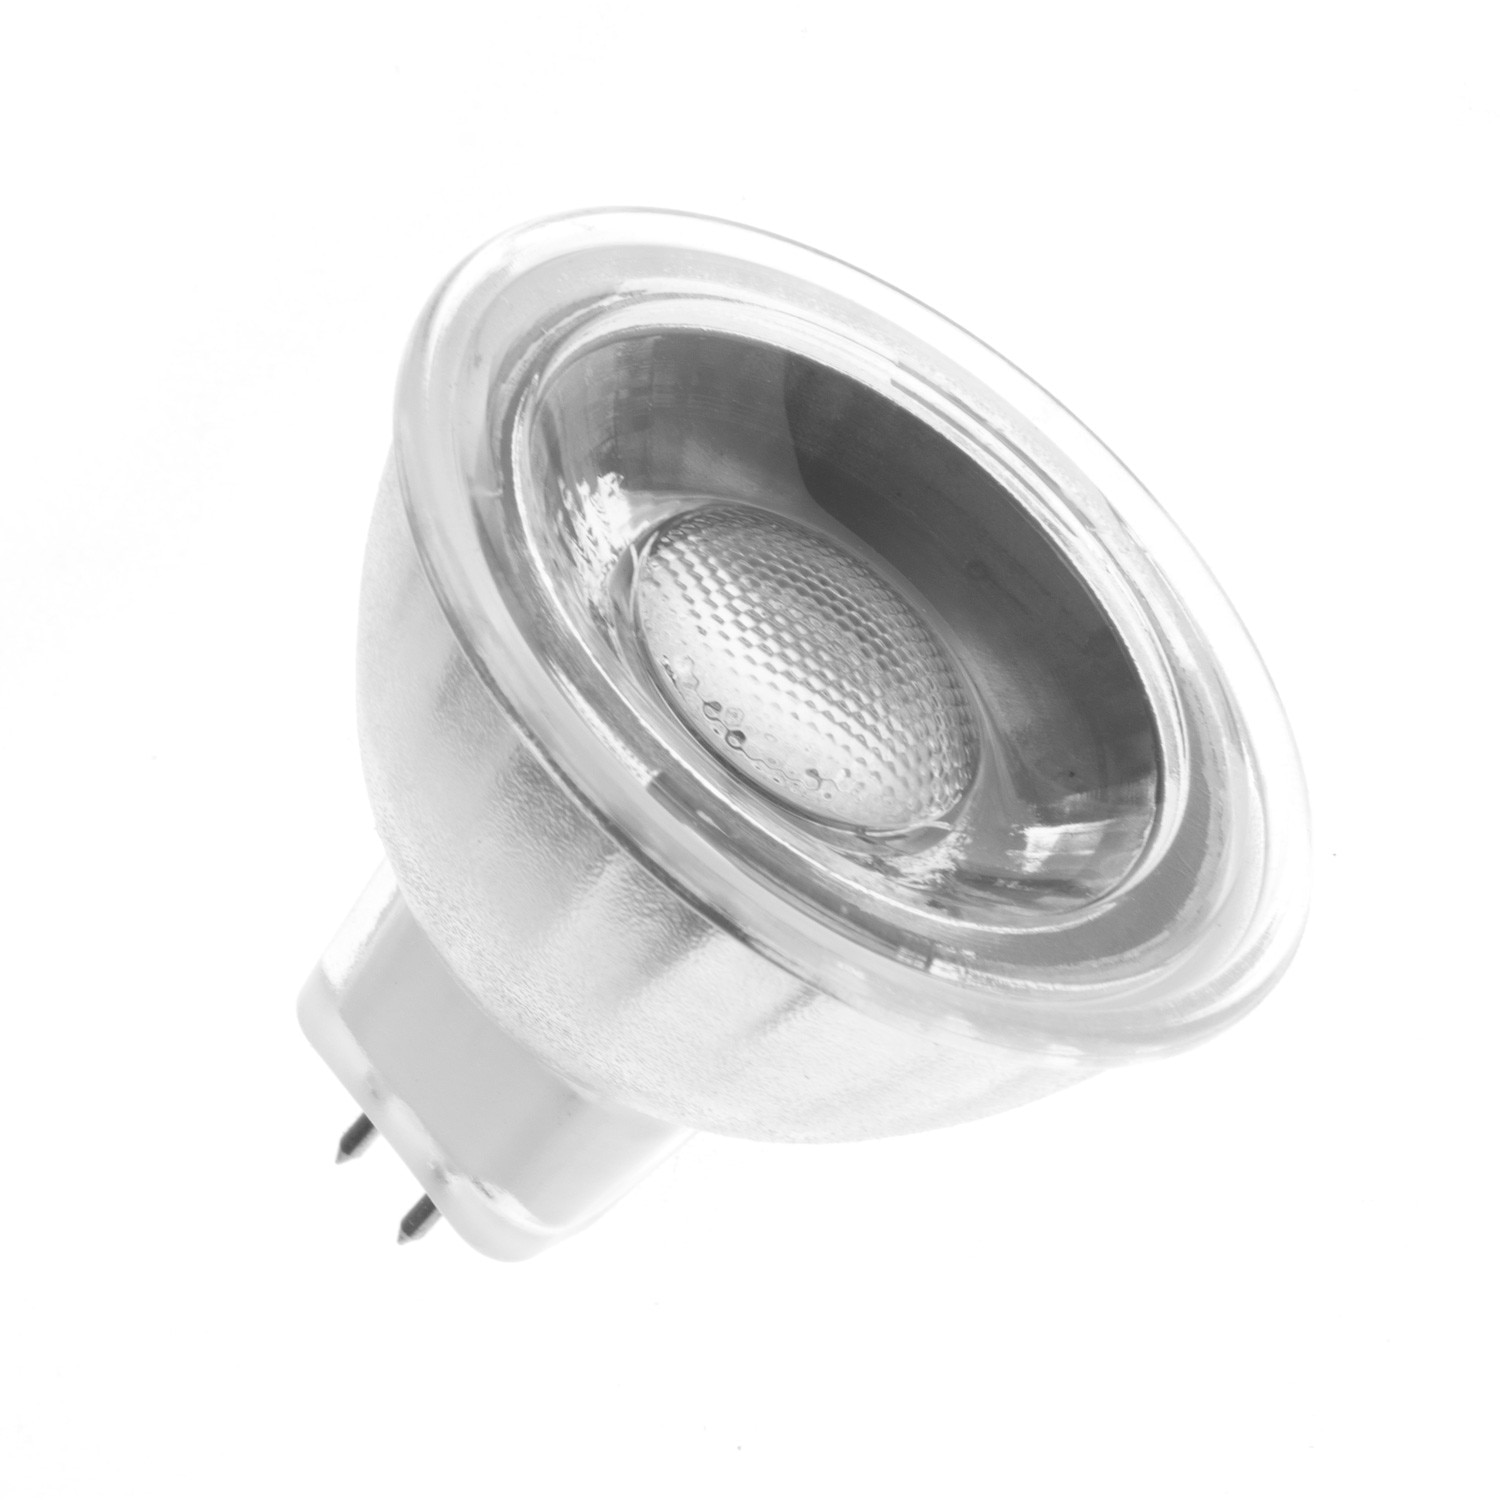 Lámpara LED GU5.3 MR16 COB Cristal 220V  5W